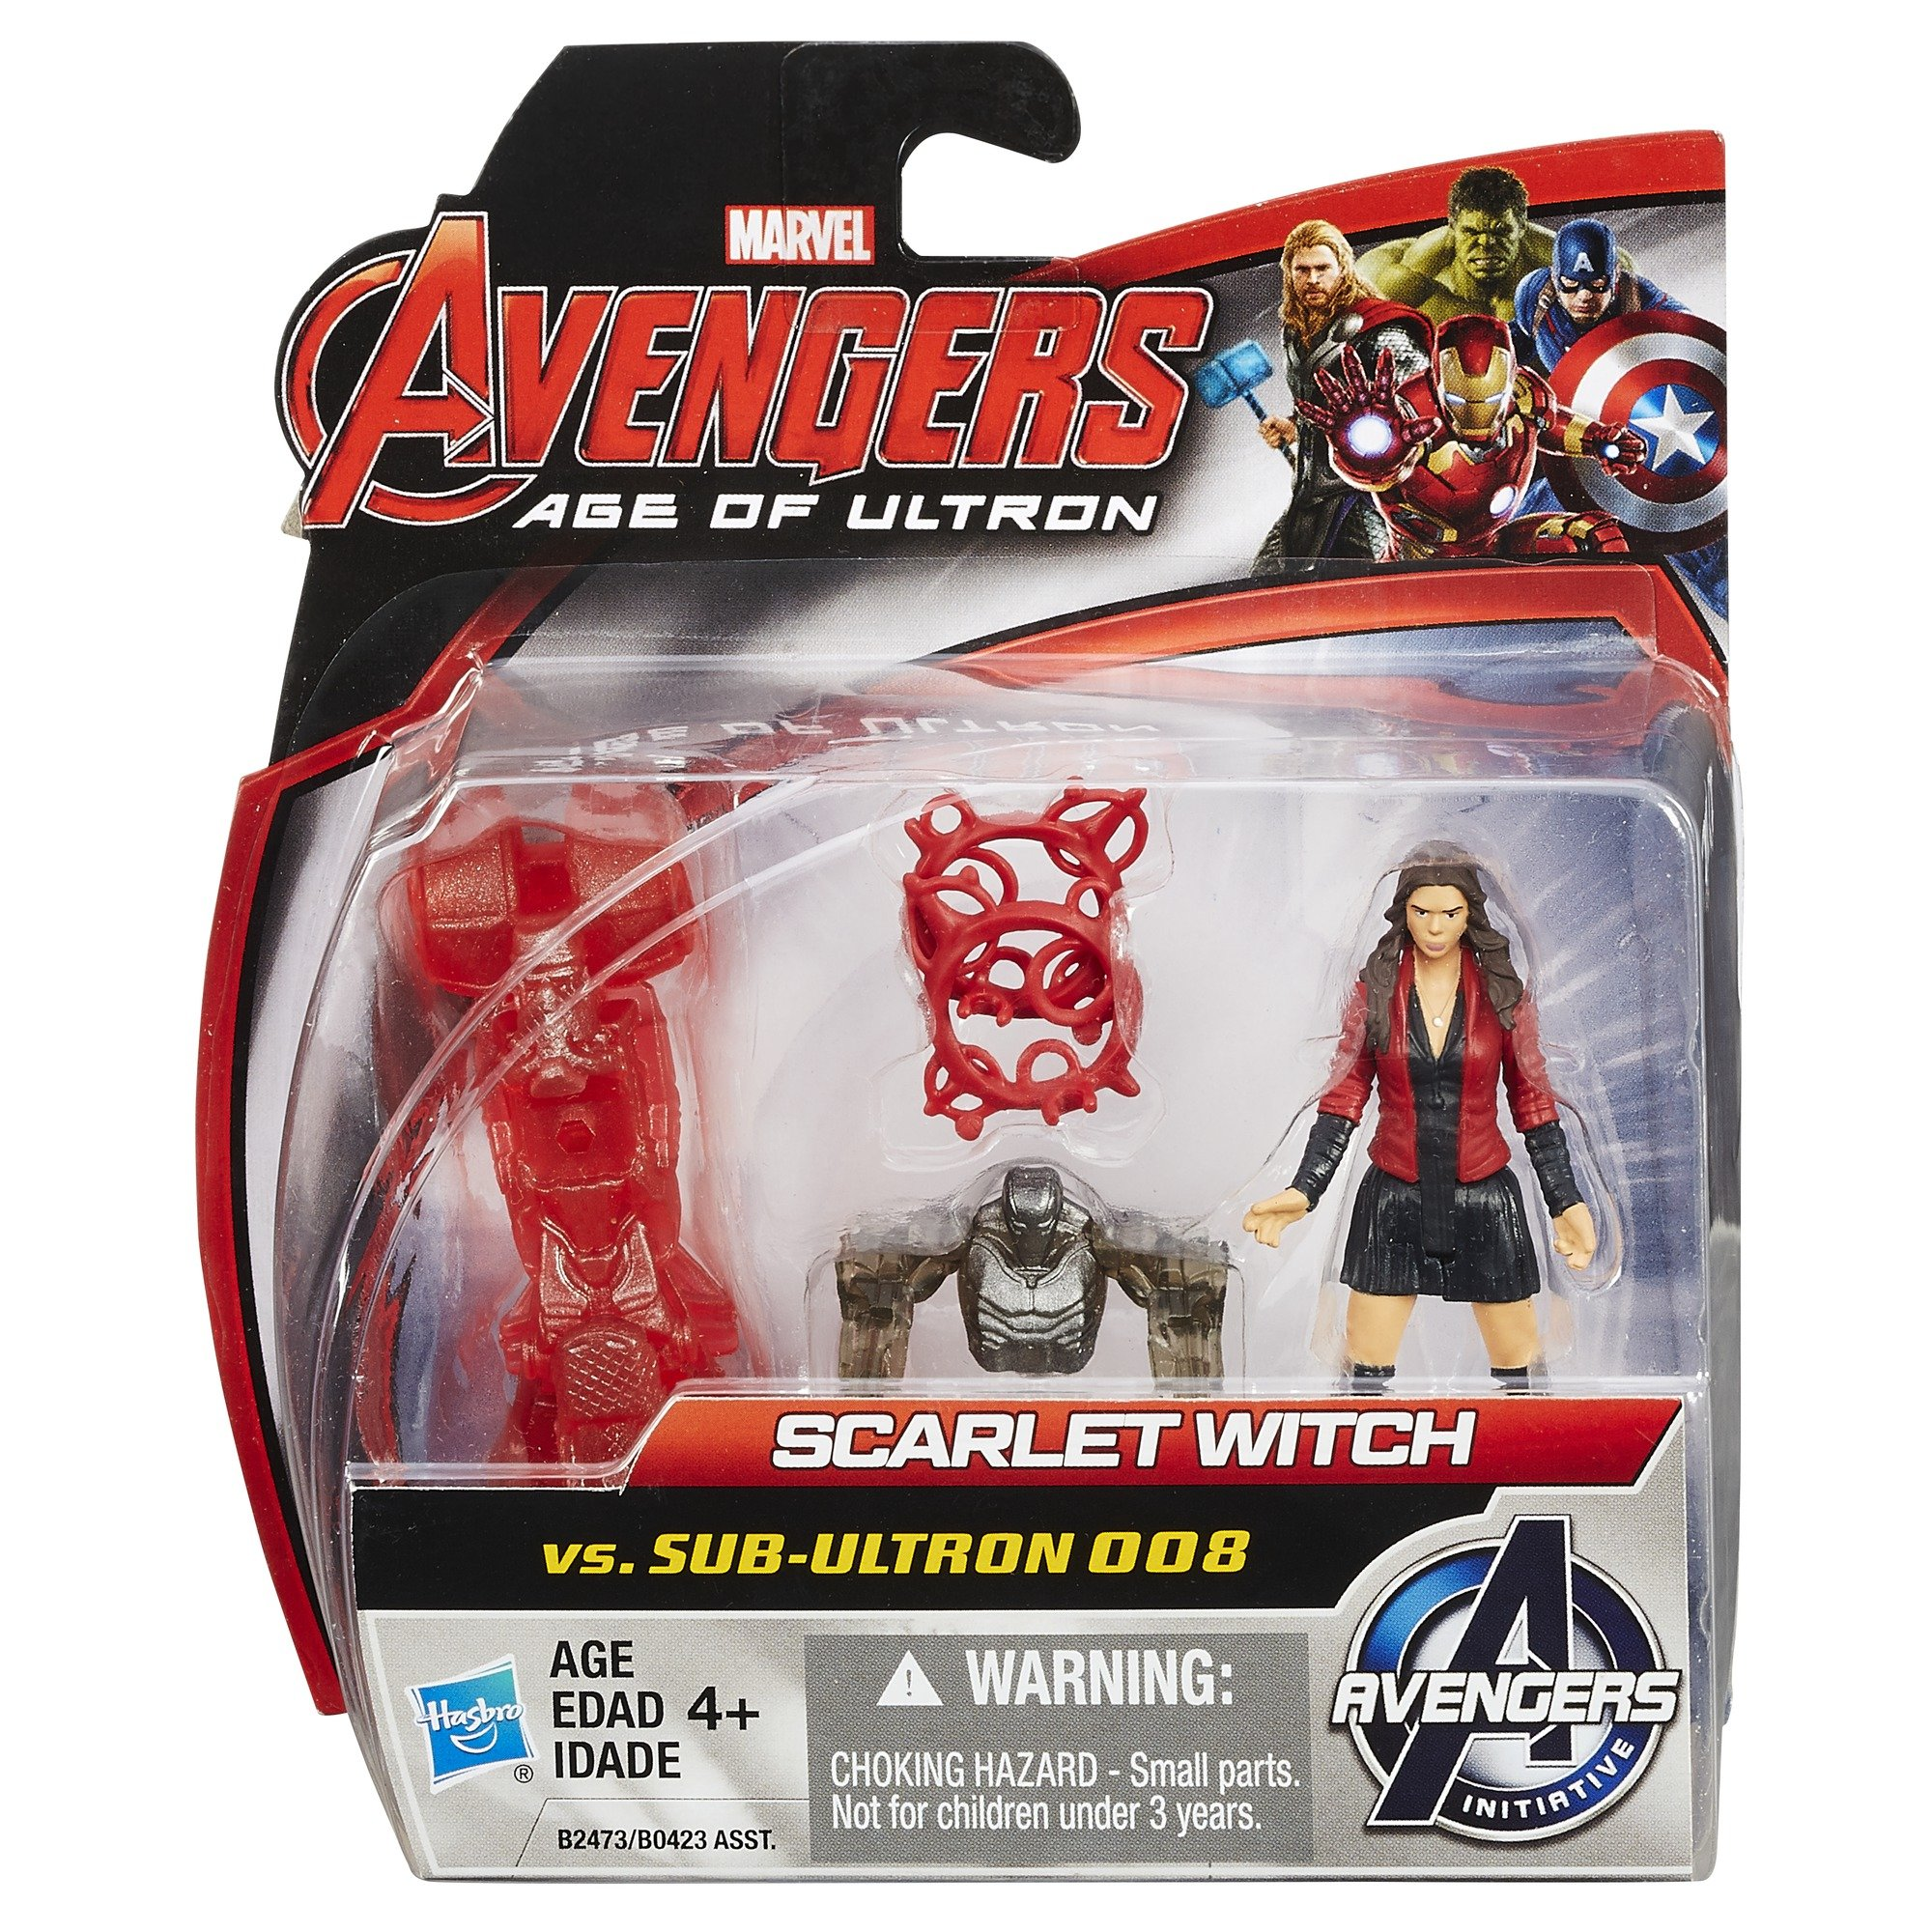 Marvel Avengers Age of Ultron Scarlet Witch vs. sub-Ultron 008